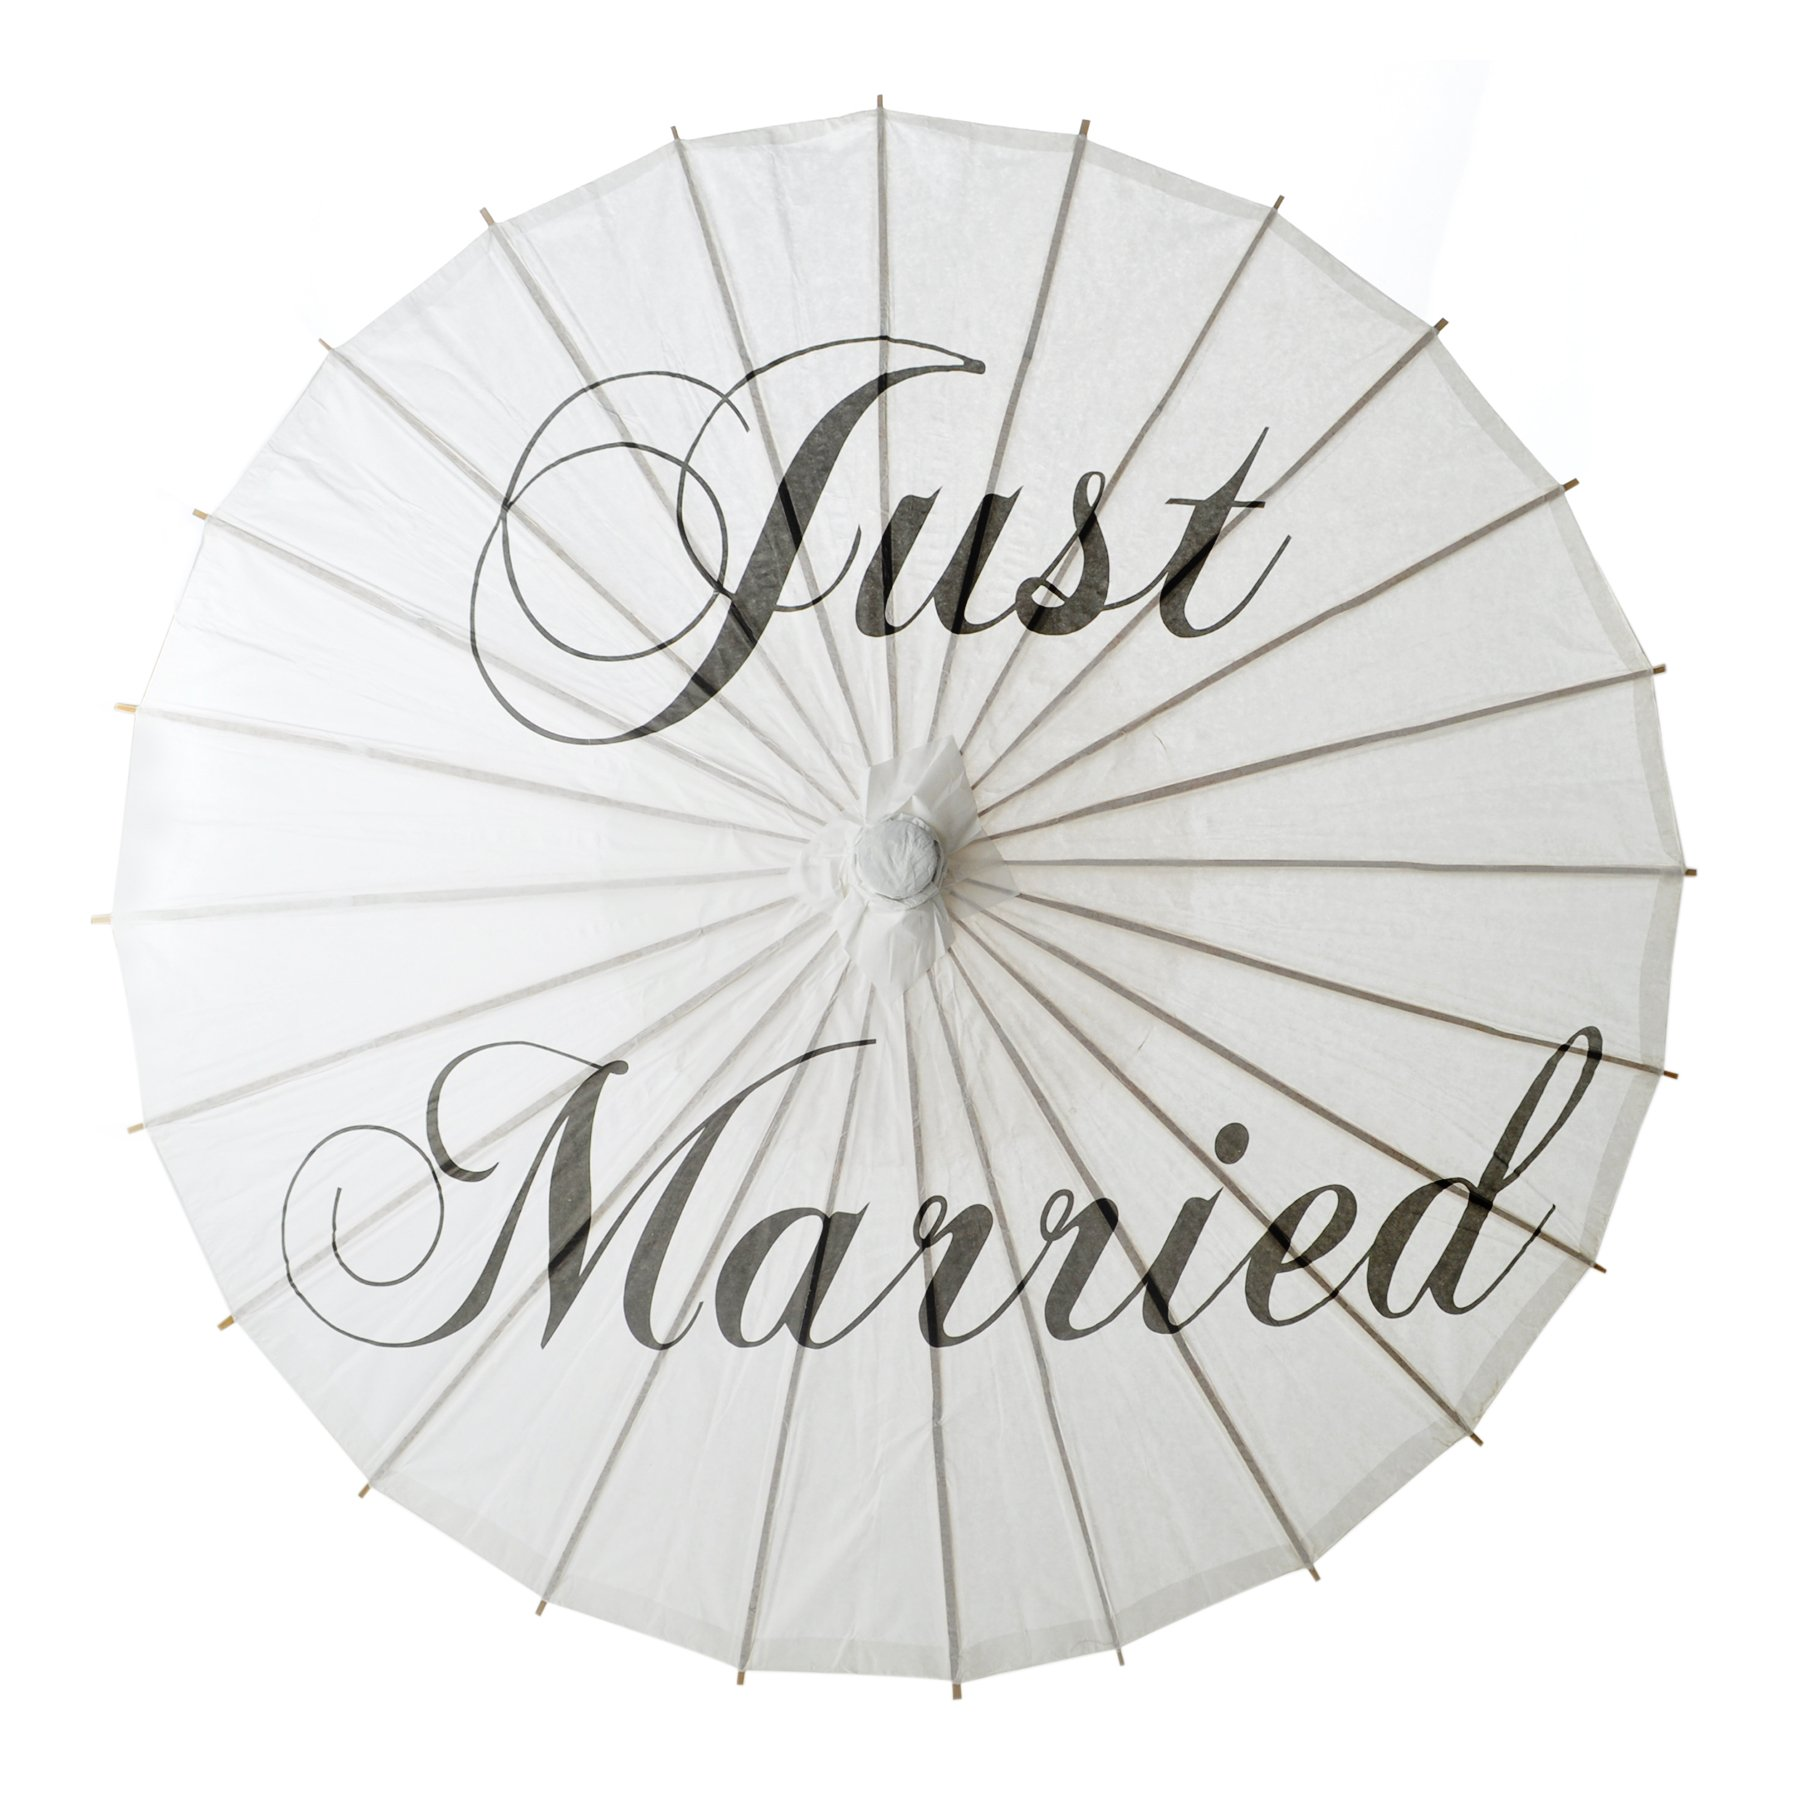 Aspire White Wedding Paper Parasol Umbrella Wedding Party Decoration Bridal Showers Photo Shoots - Just Married,60 PCS by Aspire